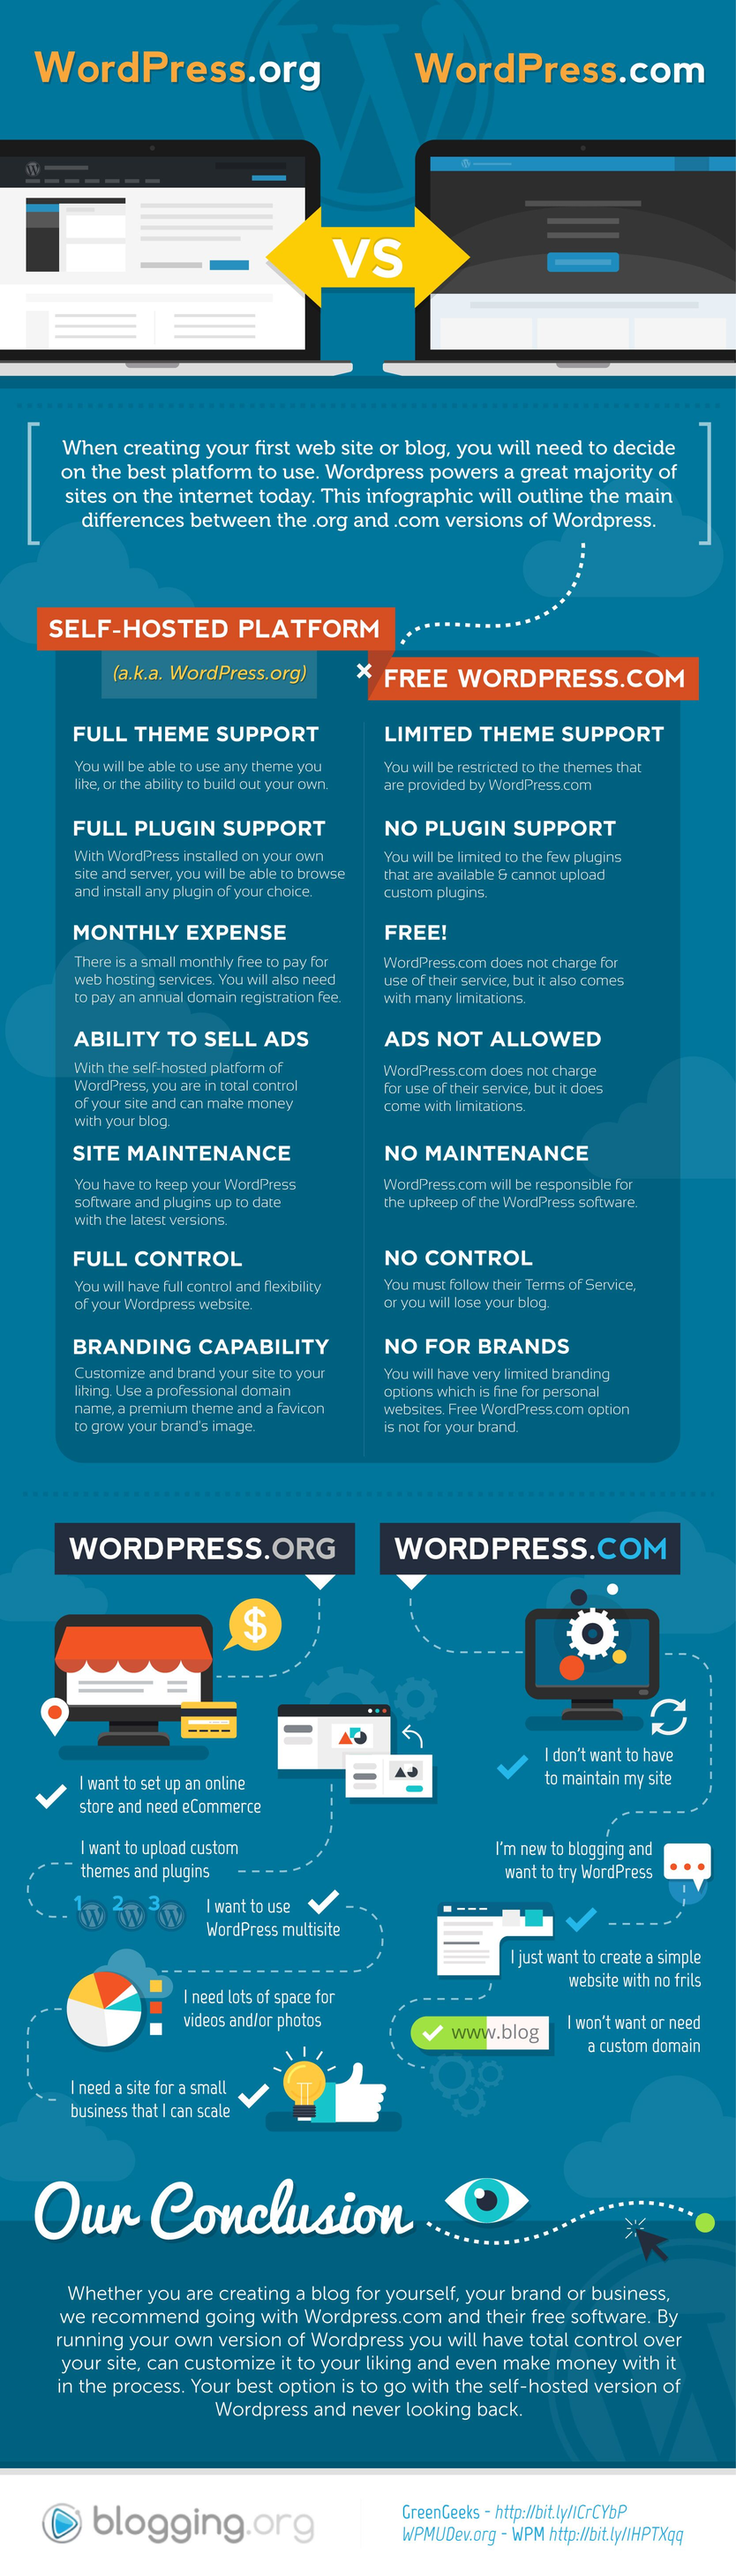 Which wordpress platform is best for me.